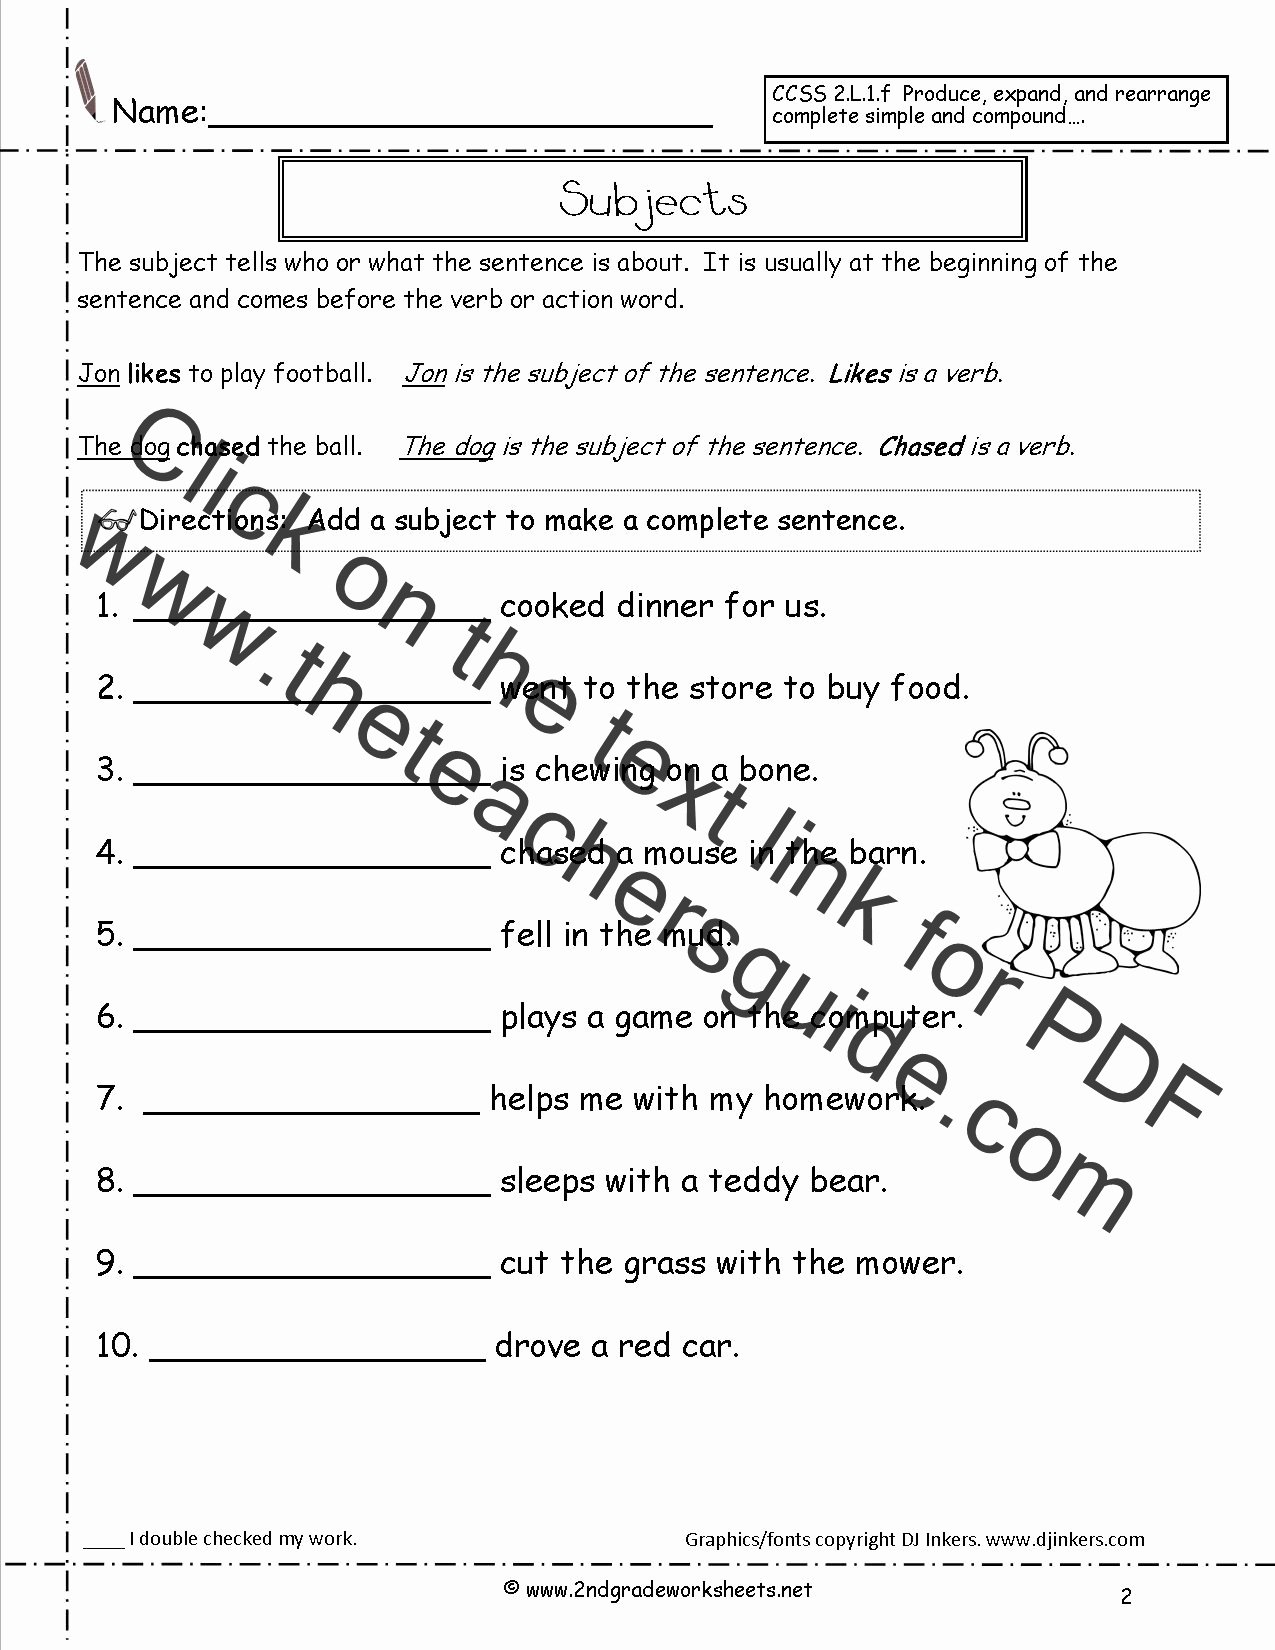 Number Sentence Worksheets 2nd Grade Ideas Second Grade Sentences Worksheets Ccss 2 L 1 F Worksheets